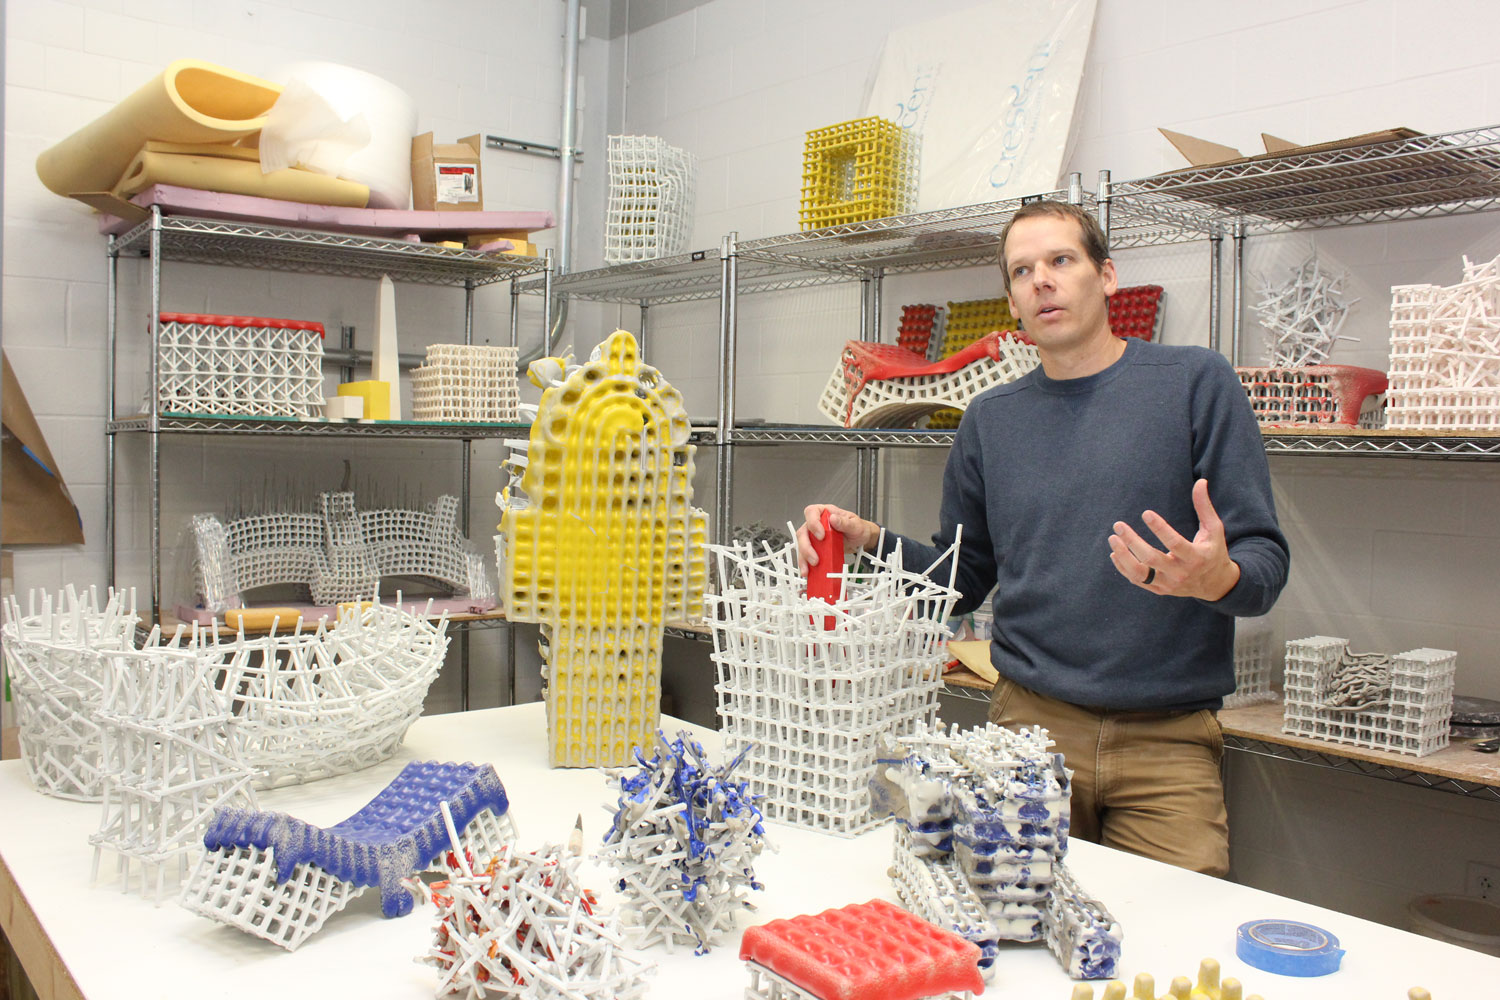 Johnson discusses his work inside his studio at Kent State, where he's an assistant professor and head of the ceramics department.